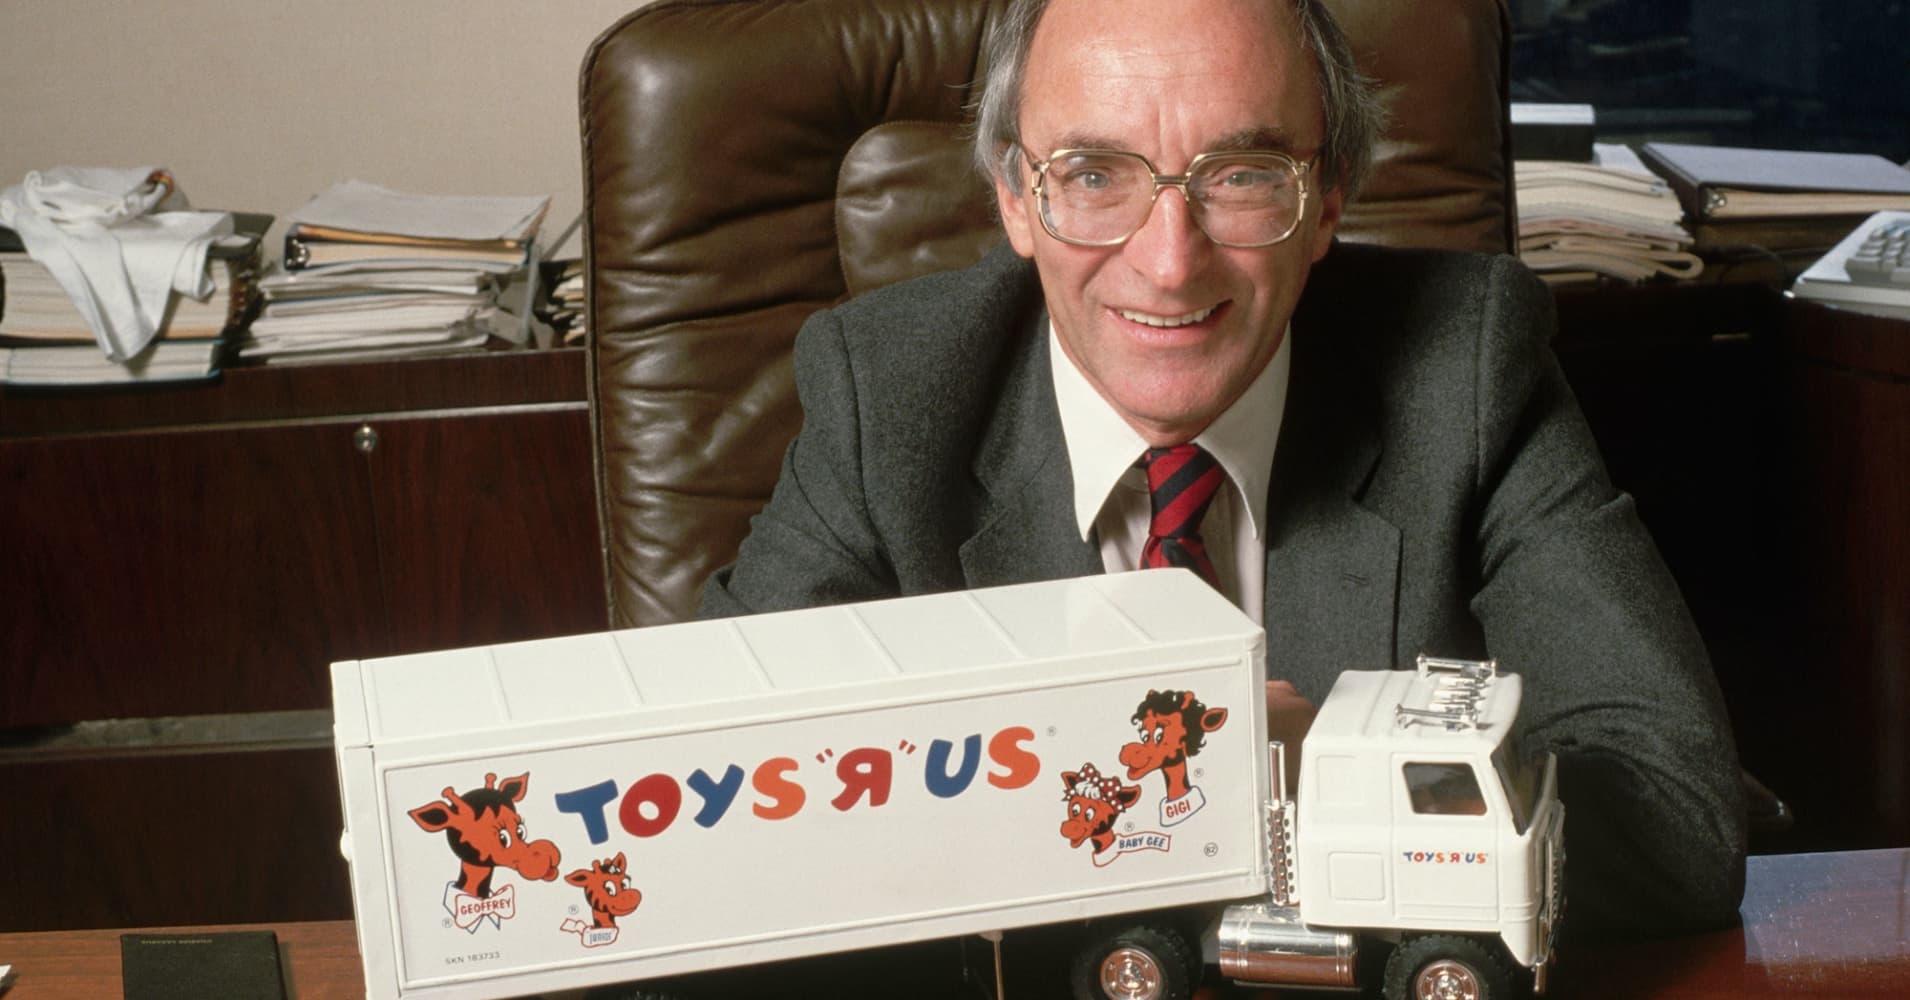 Toys R Us founder Charles Lazarus dies at 94, as toy empire liquidates